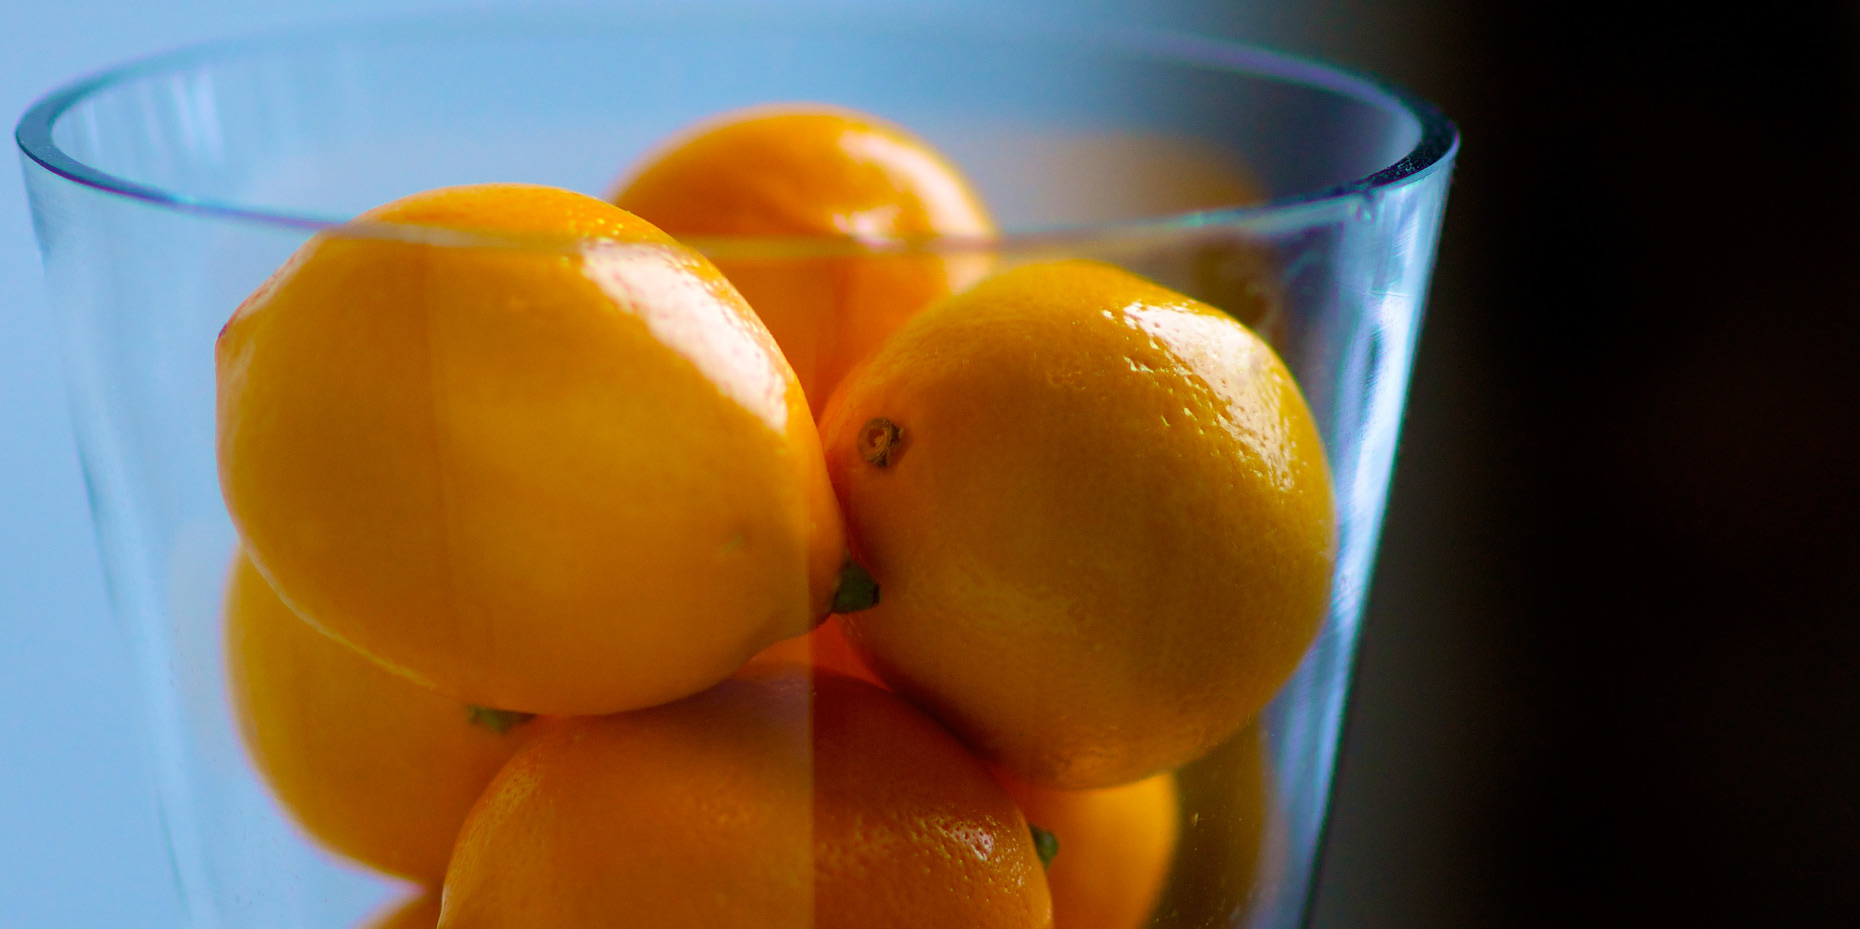 oranges-in-glass-jar.jpg